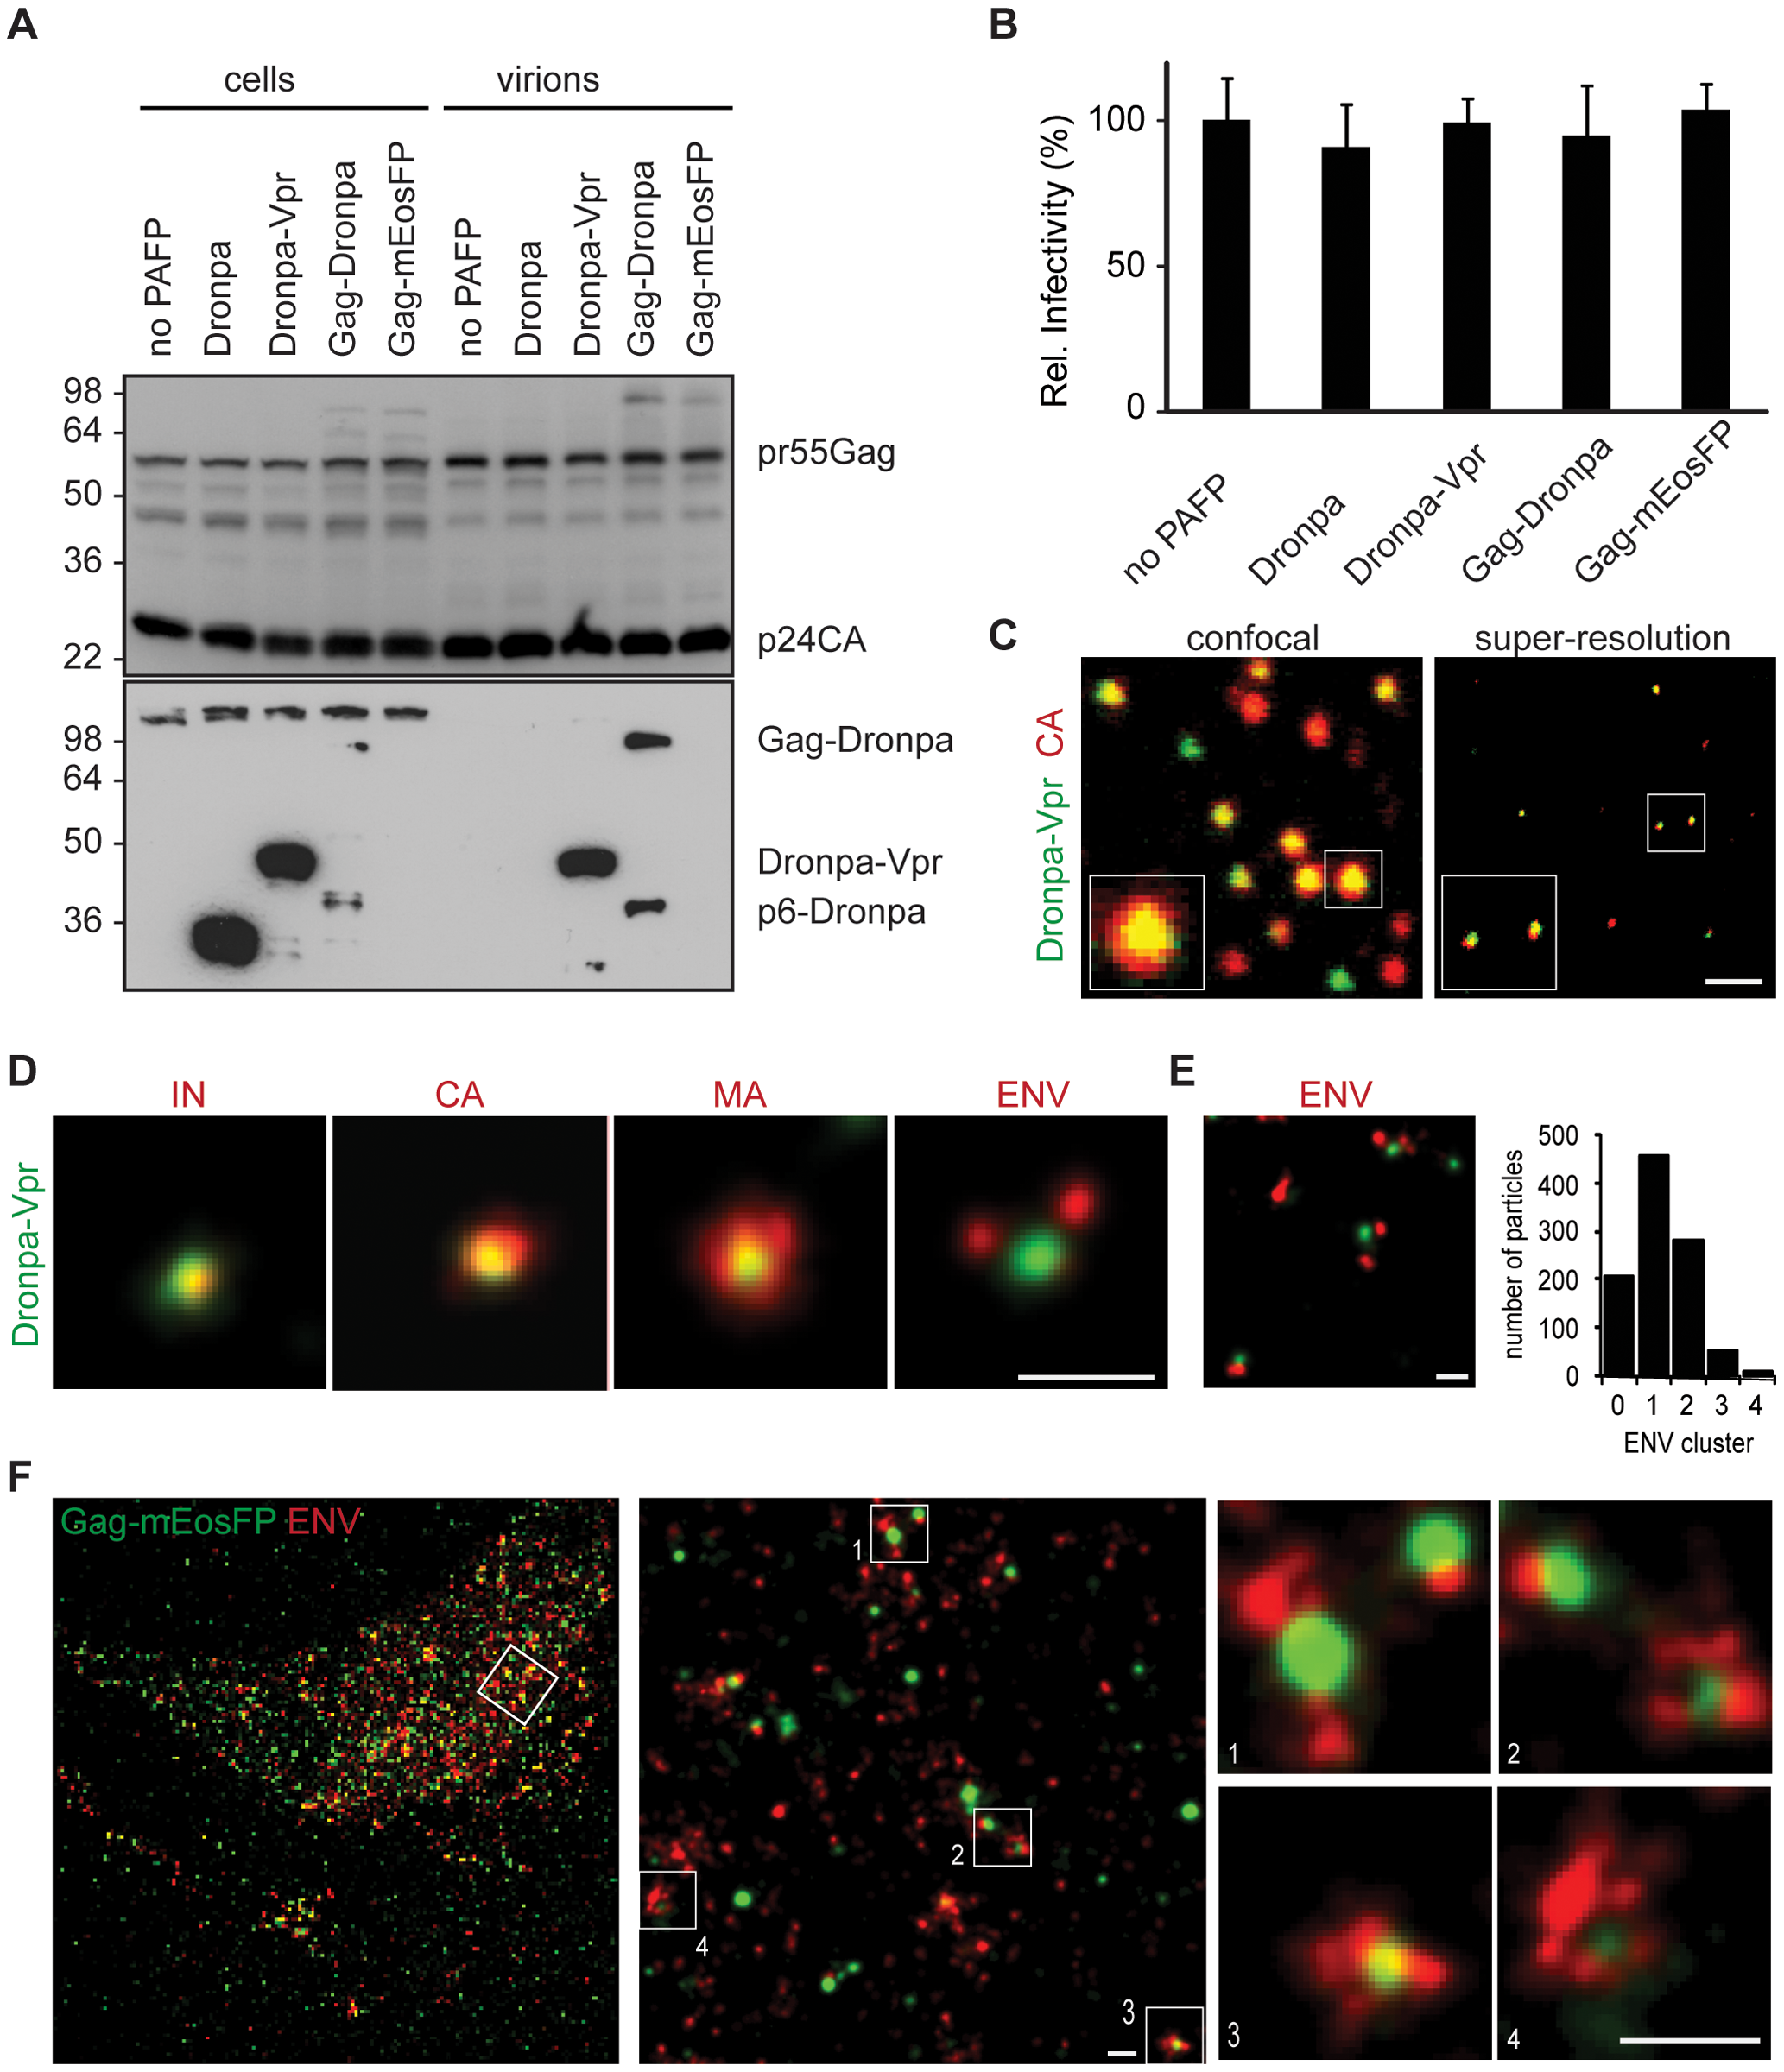 Structural features of single HIV-1 virions and assembly sites are revealed by multicolor super-resolution microscopy.